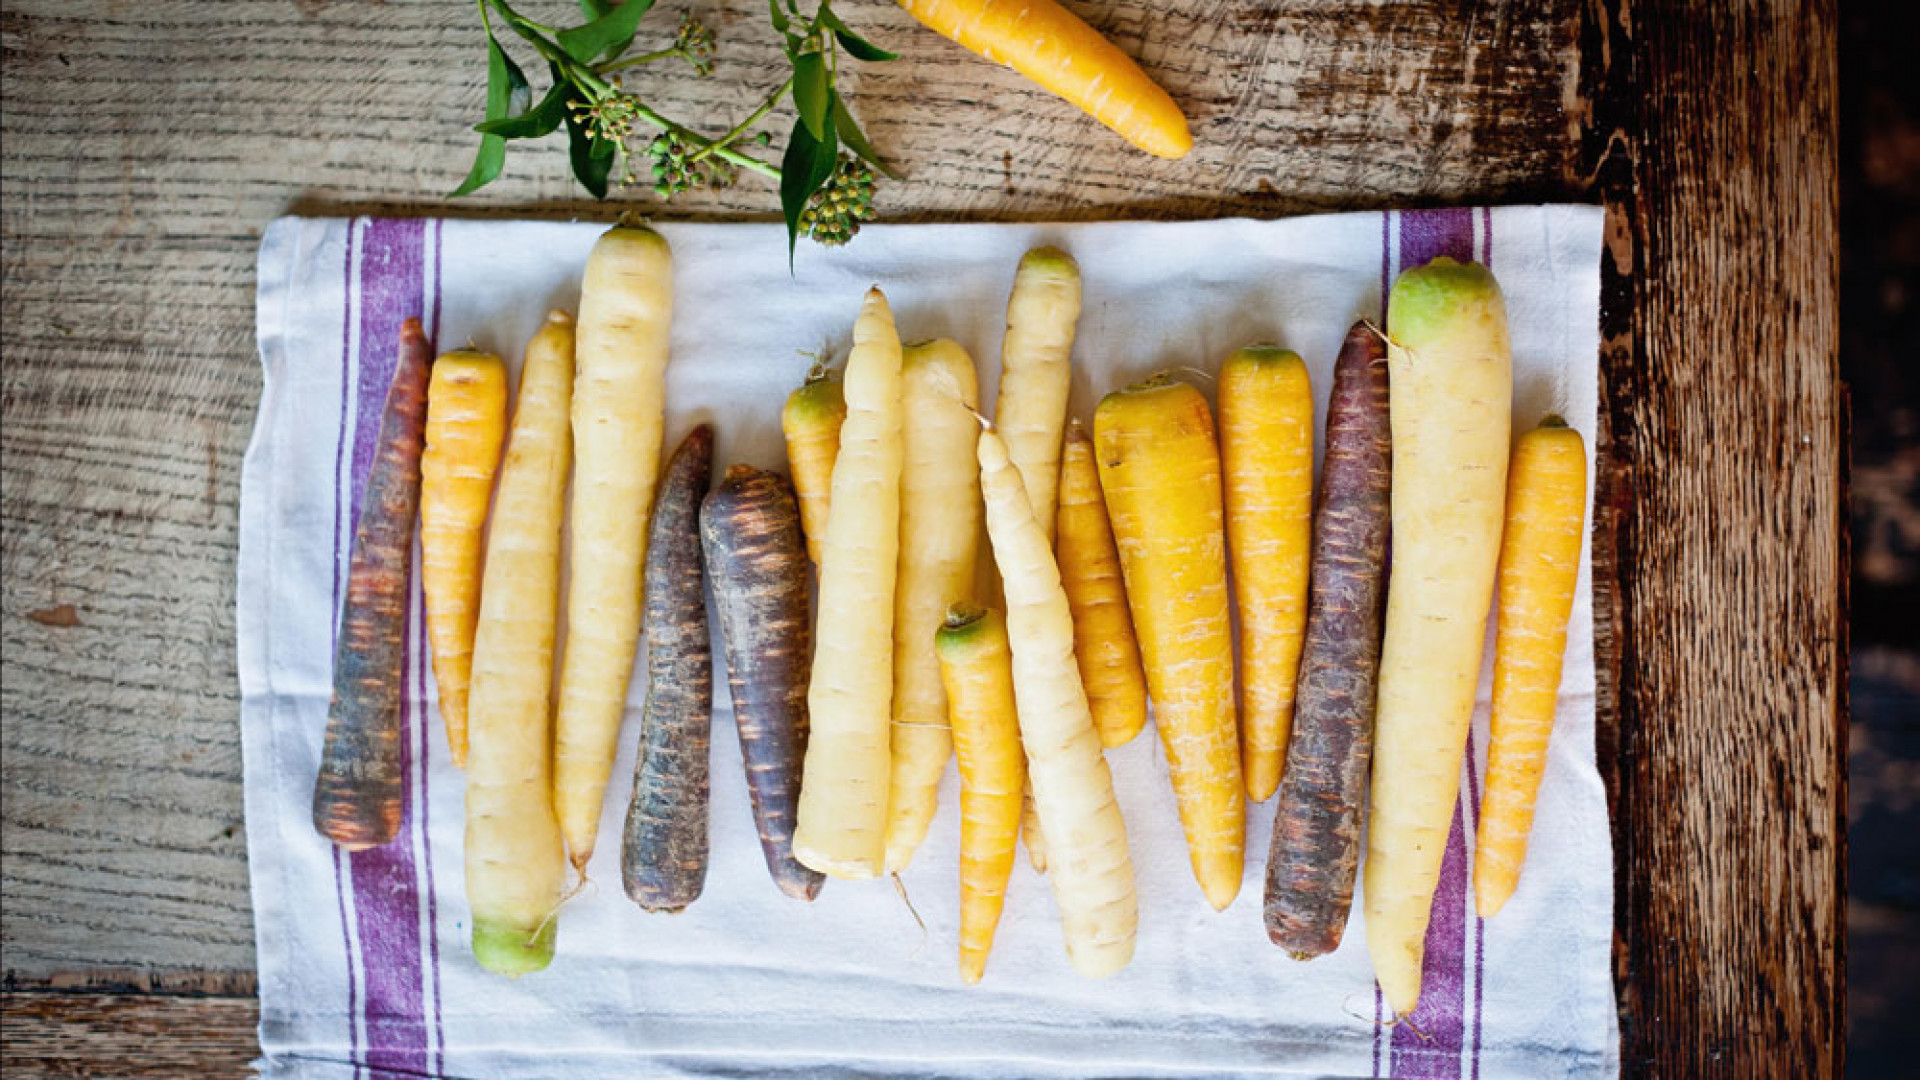 Carrots at the Larder